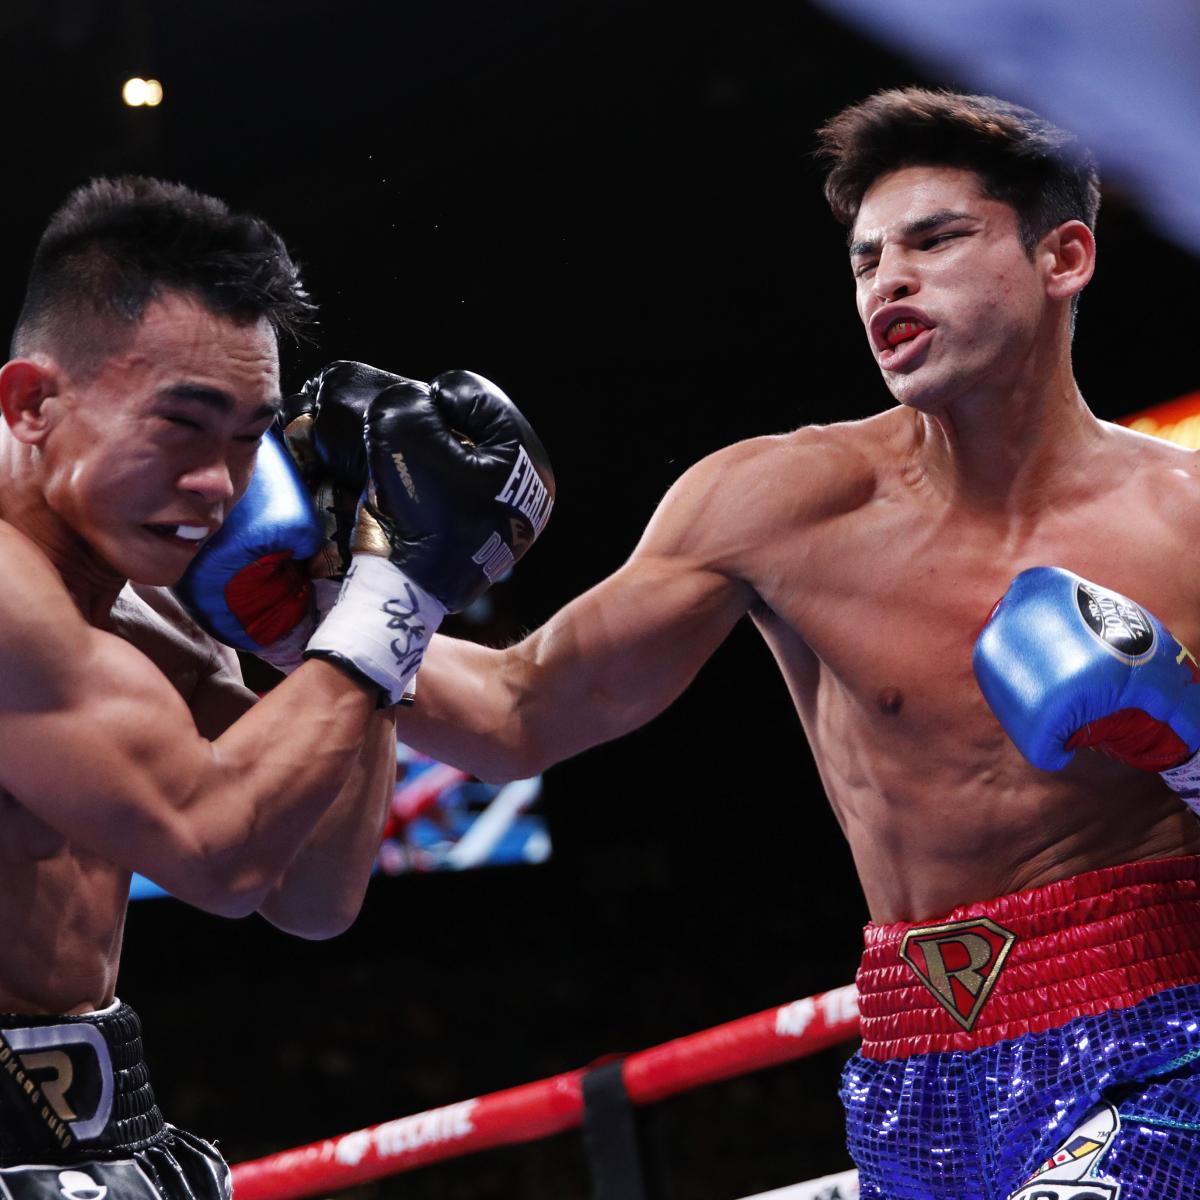 Ryan Garcia Calls Out Gervonta Davis for Potential Fight in 2021